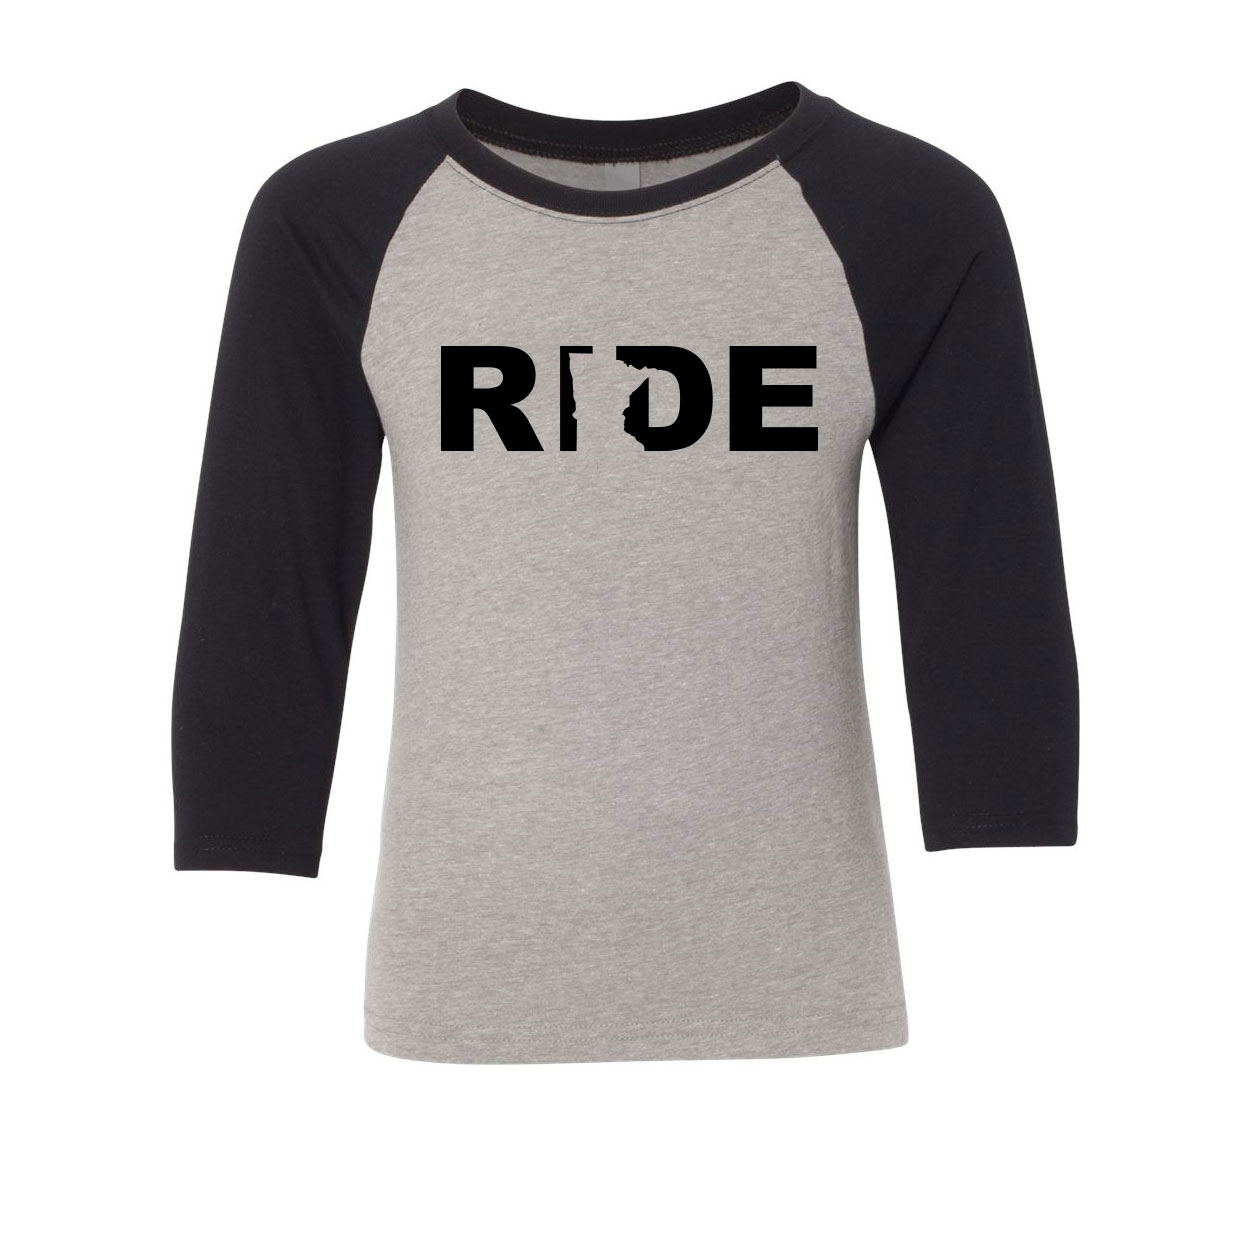 Ride Minnesota Classic Youth Premium Raglan Shirt Gray (Black Logo)